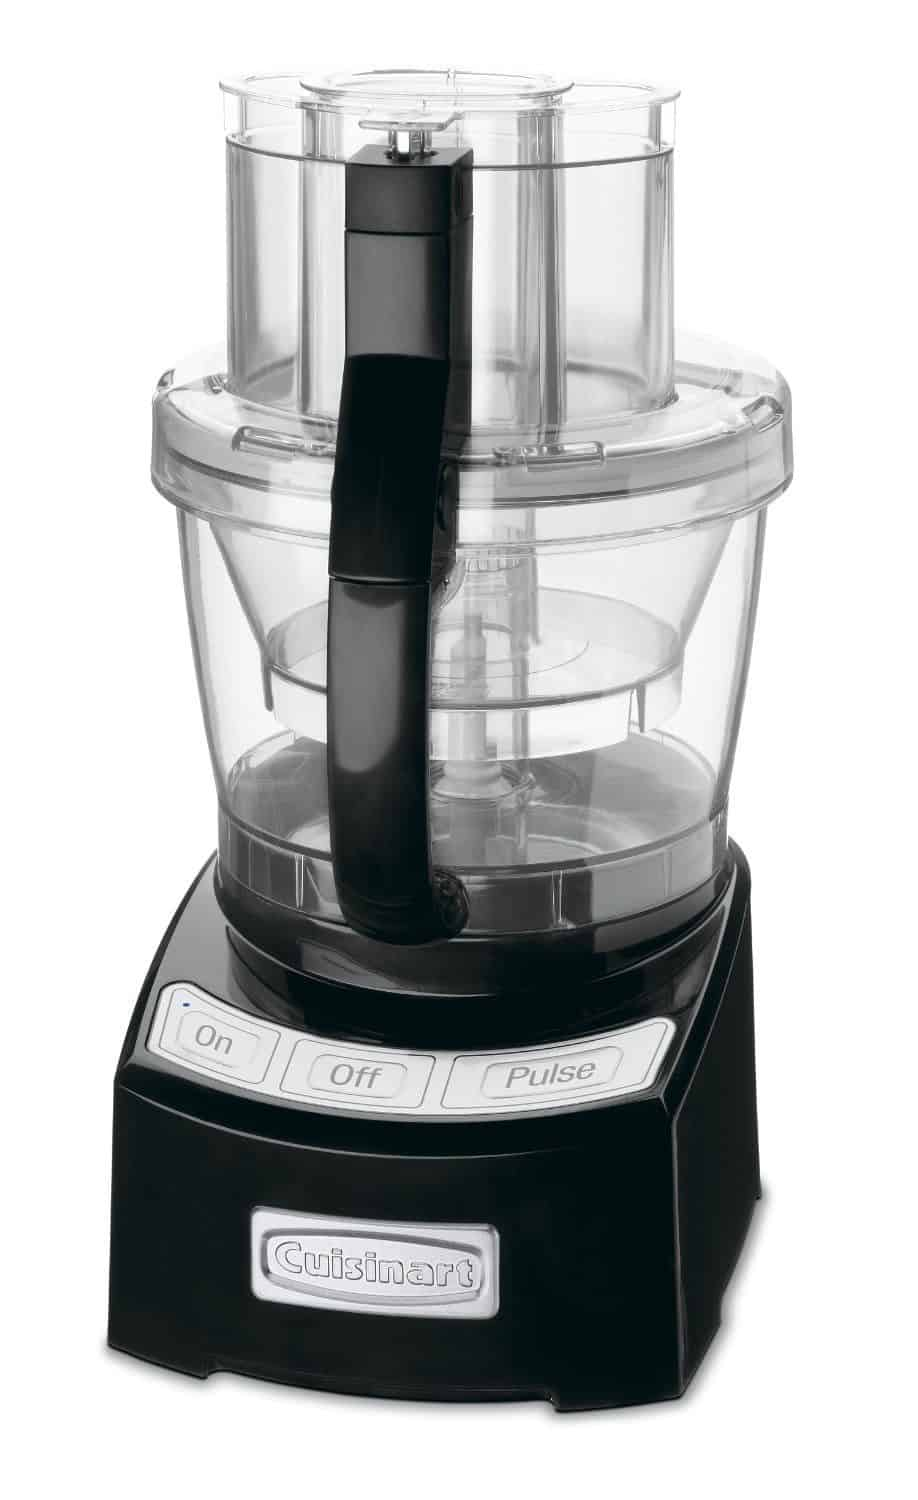 Cuisinart Elite Collection 12-Cup FP-12BK Food Processor Review